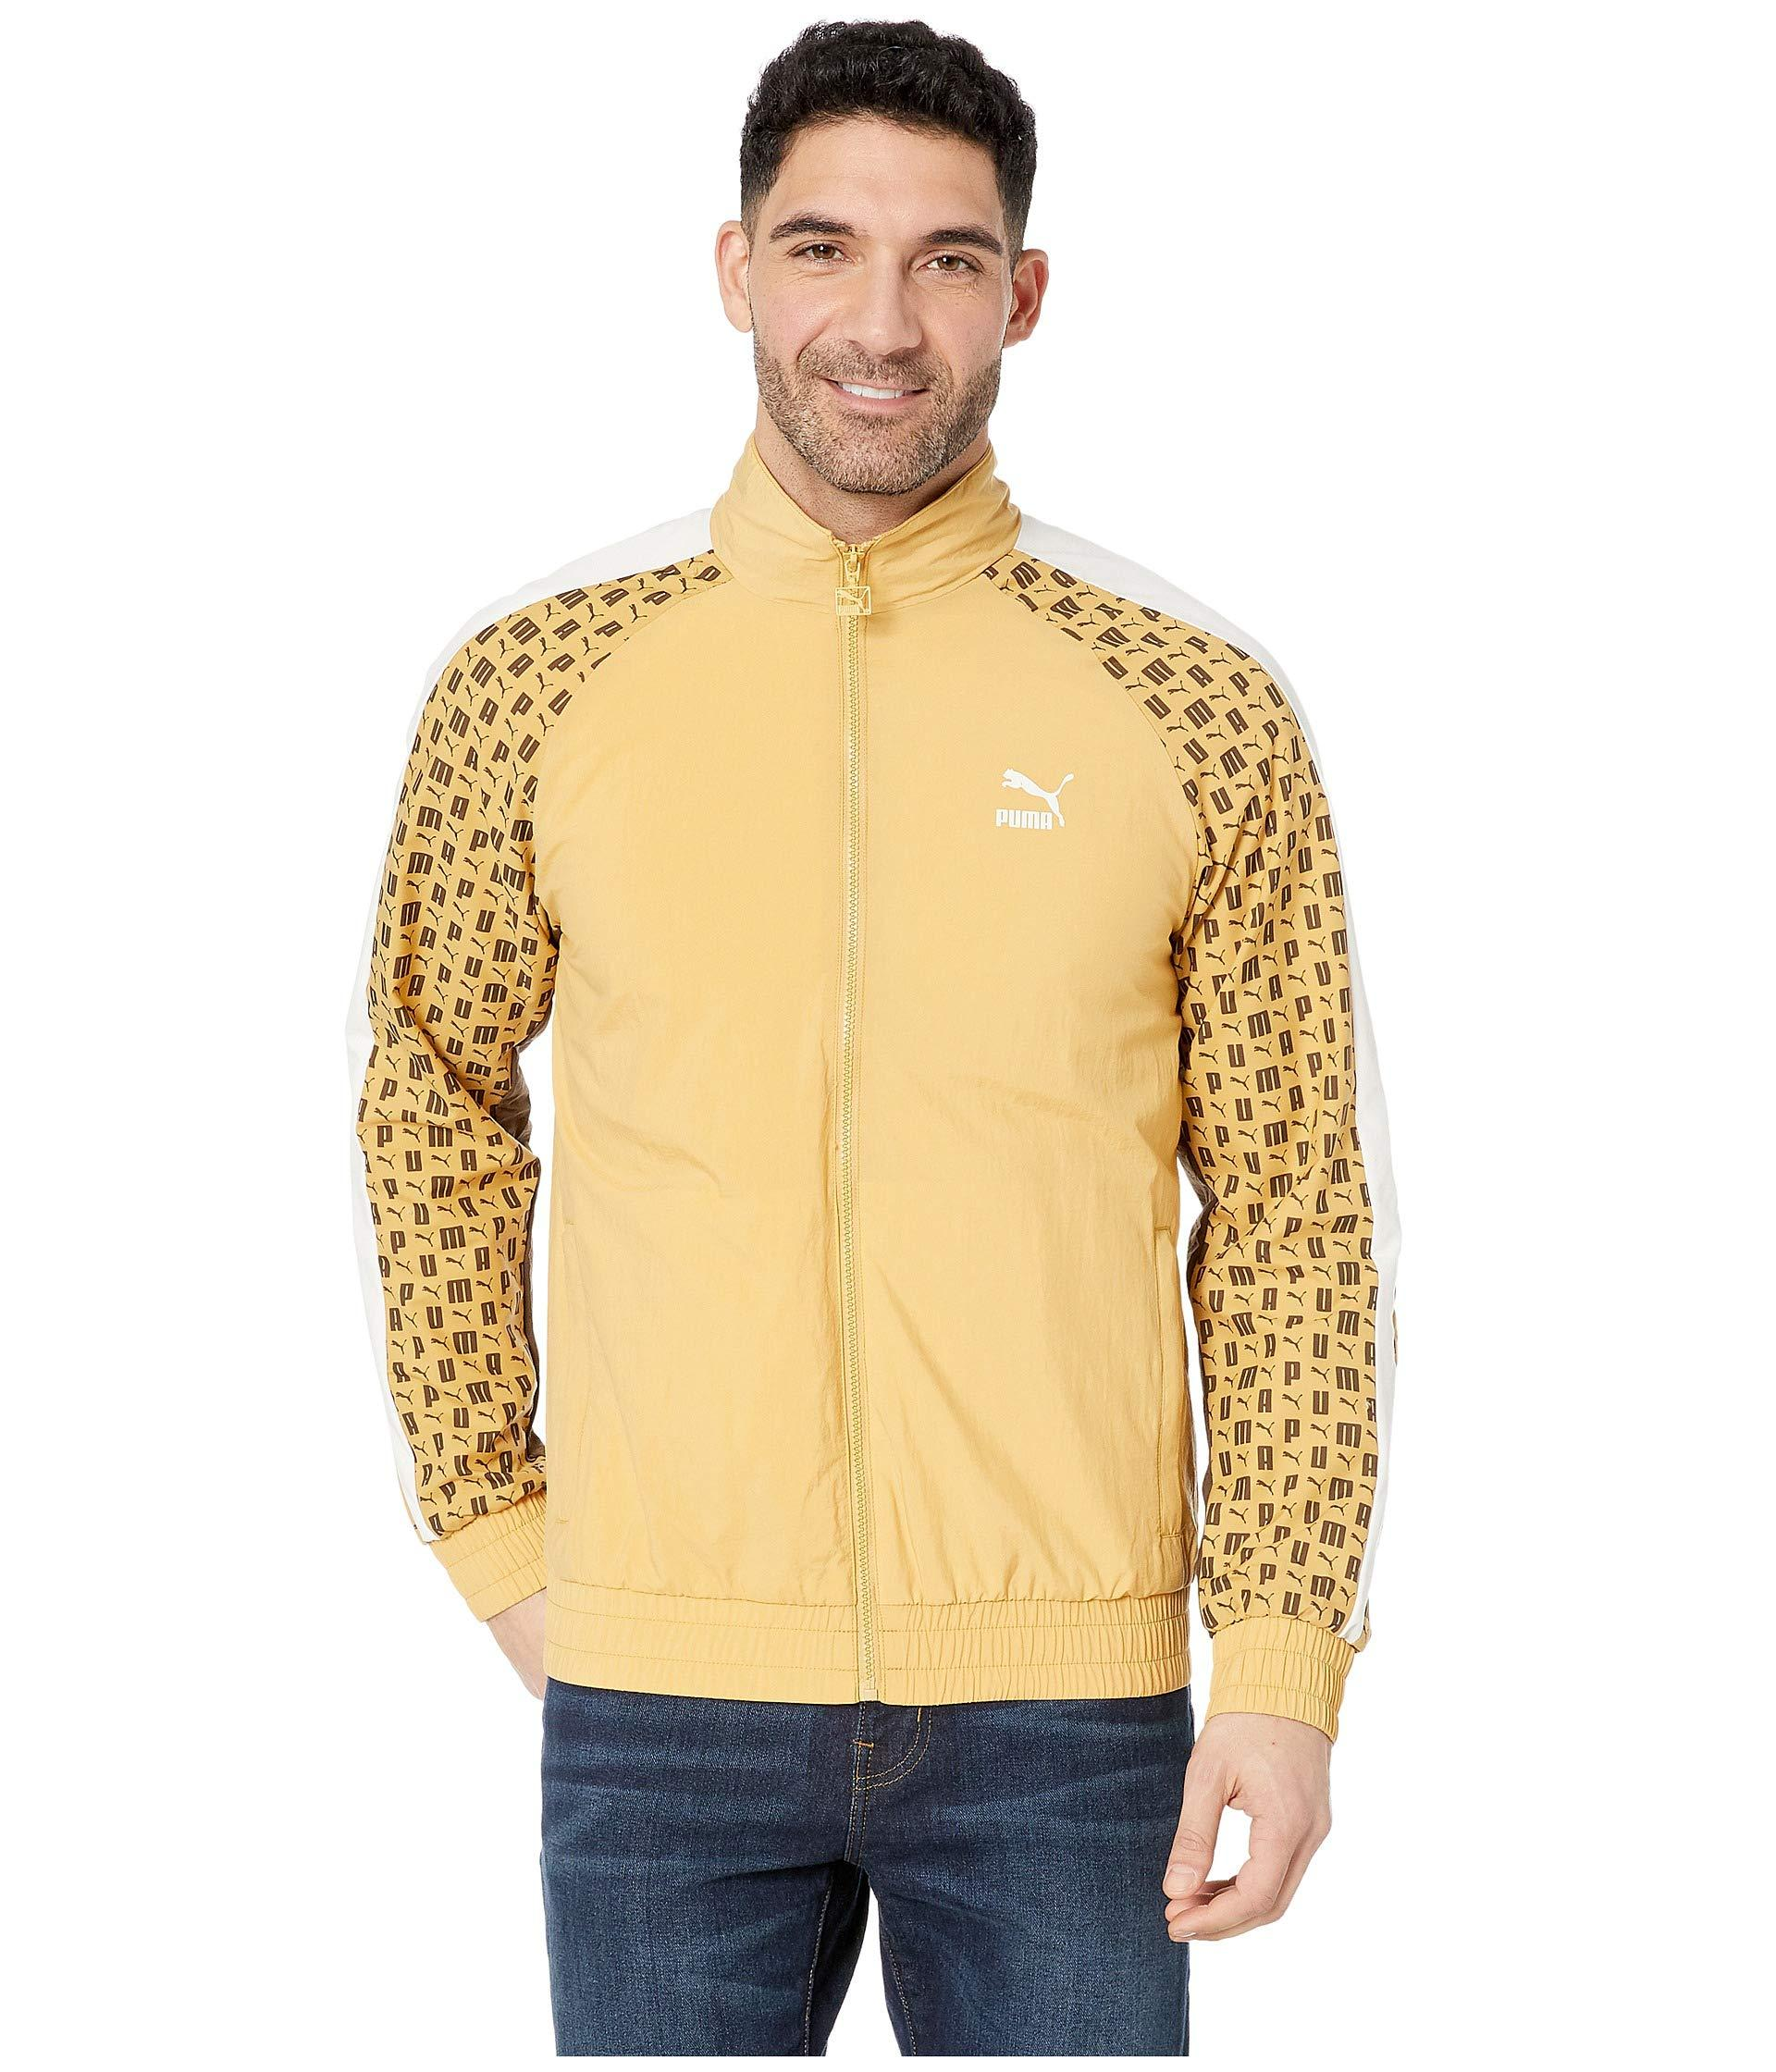 99d660e09c84 Lyst - PUMA Lux Woven T7 Track Jacket in Yellow for Men